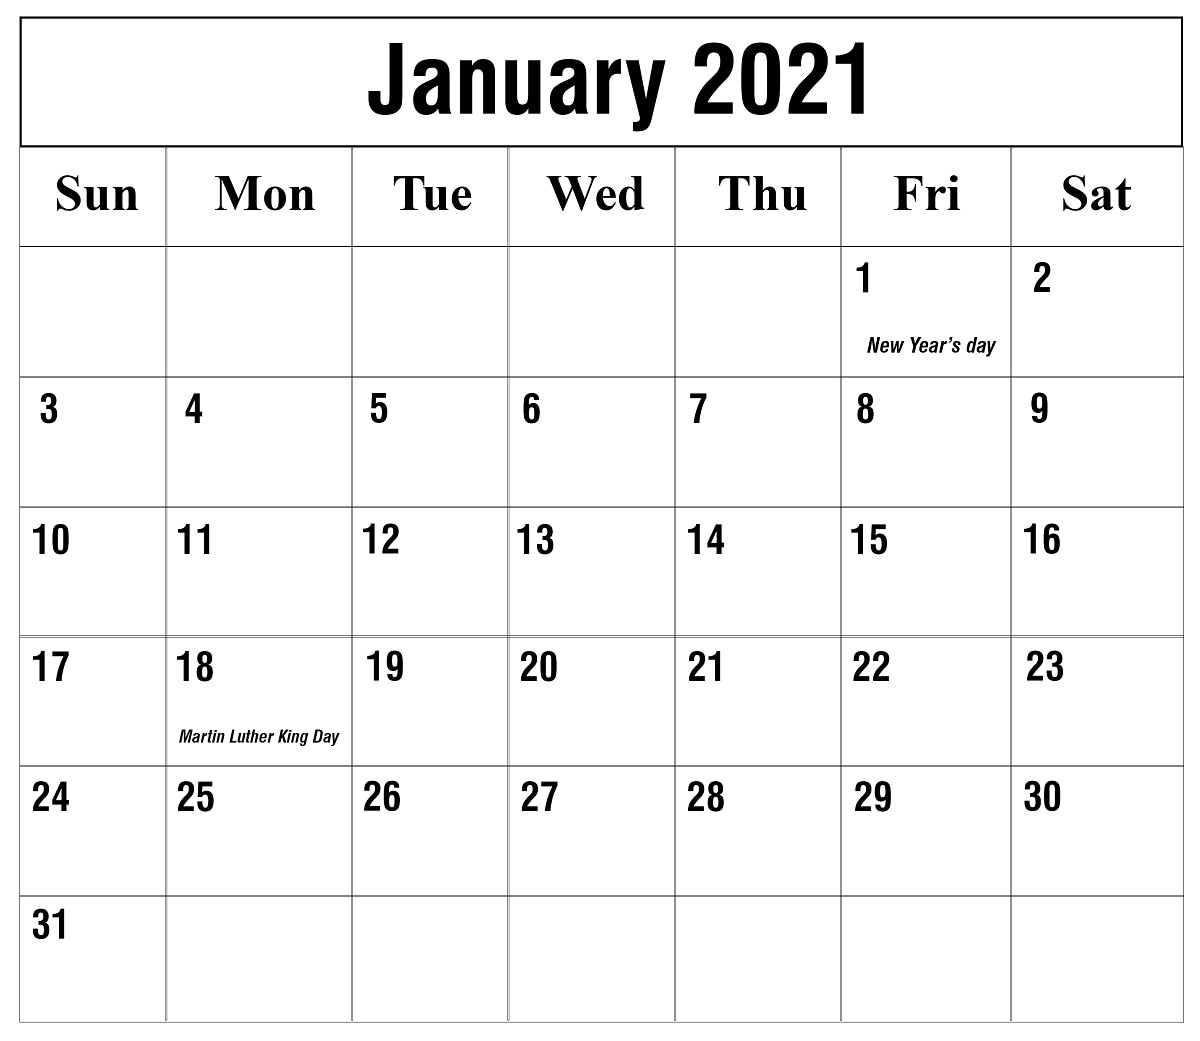 Free January 2021 Printable Calendar Template In Pdf, Excel In Julian Vs Gregorian Calendar 2021